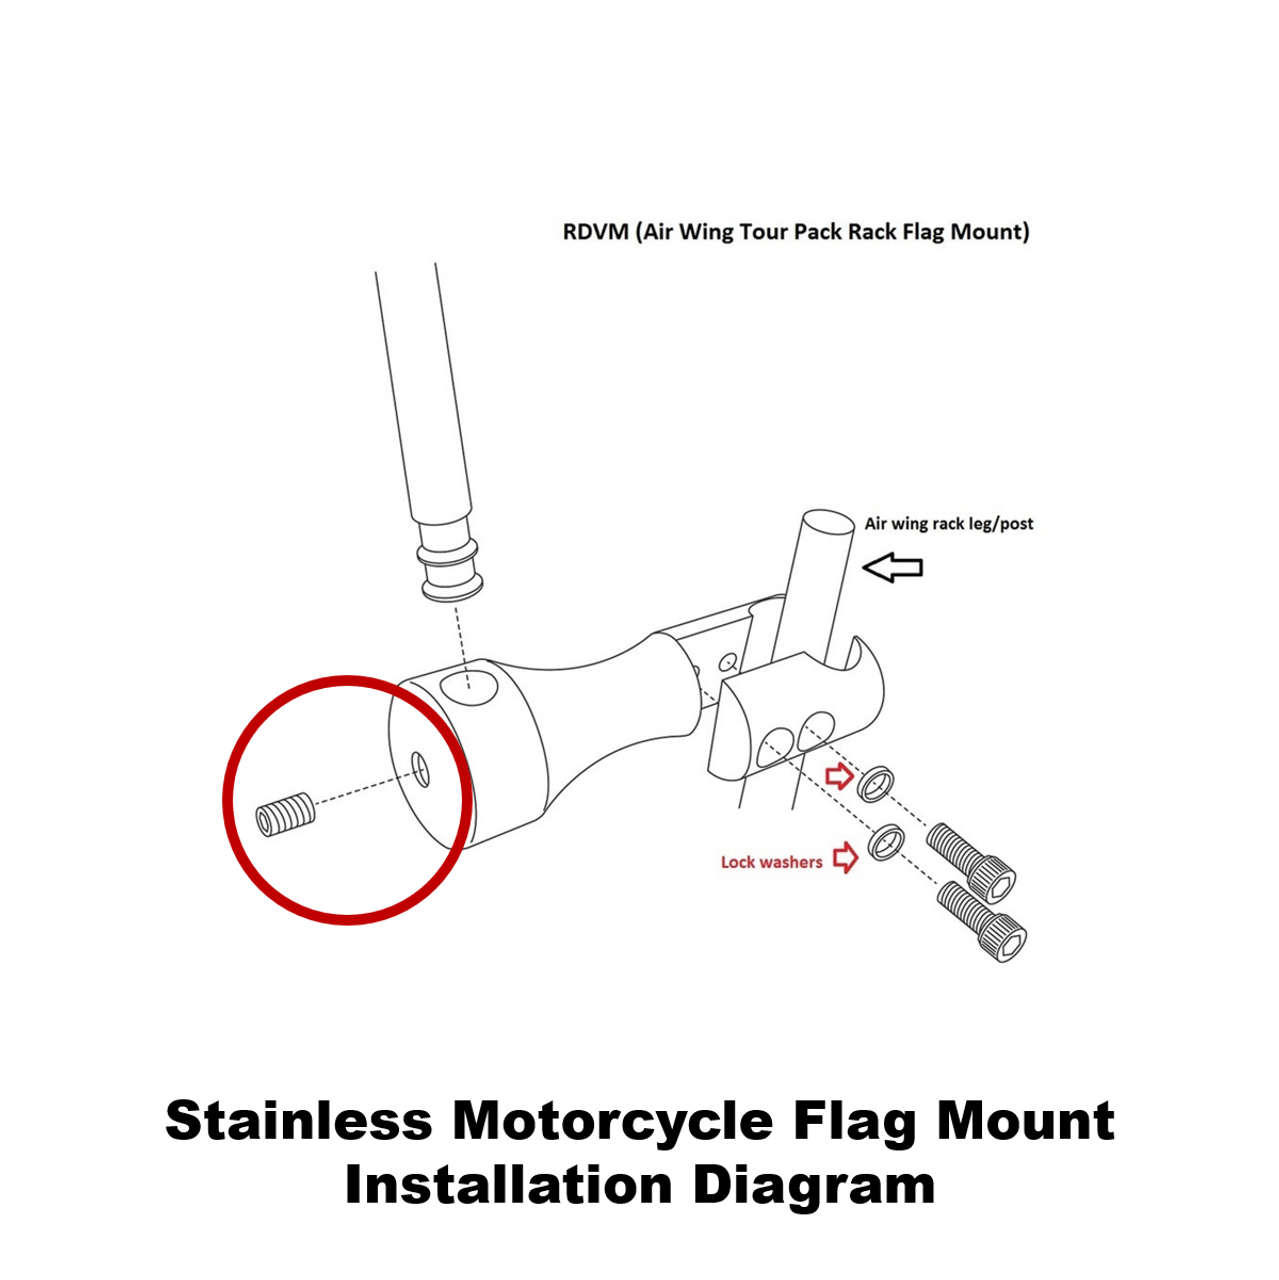 Extended mount (RDVM) installation diagram (exploded view)